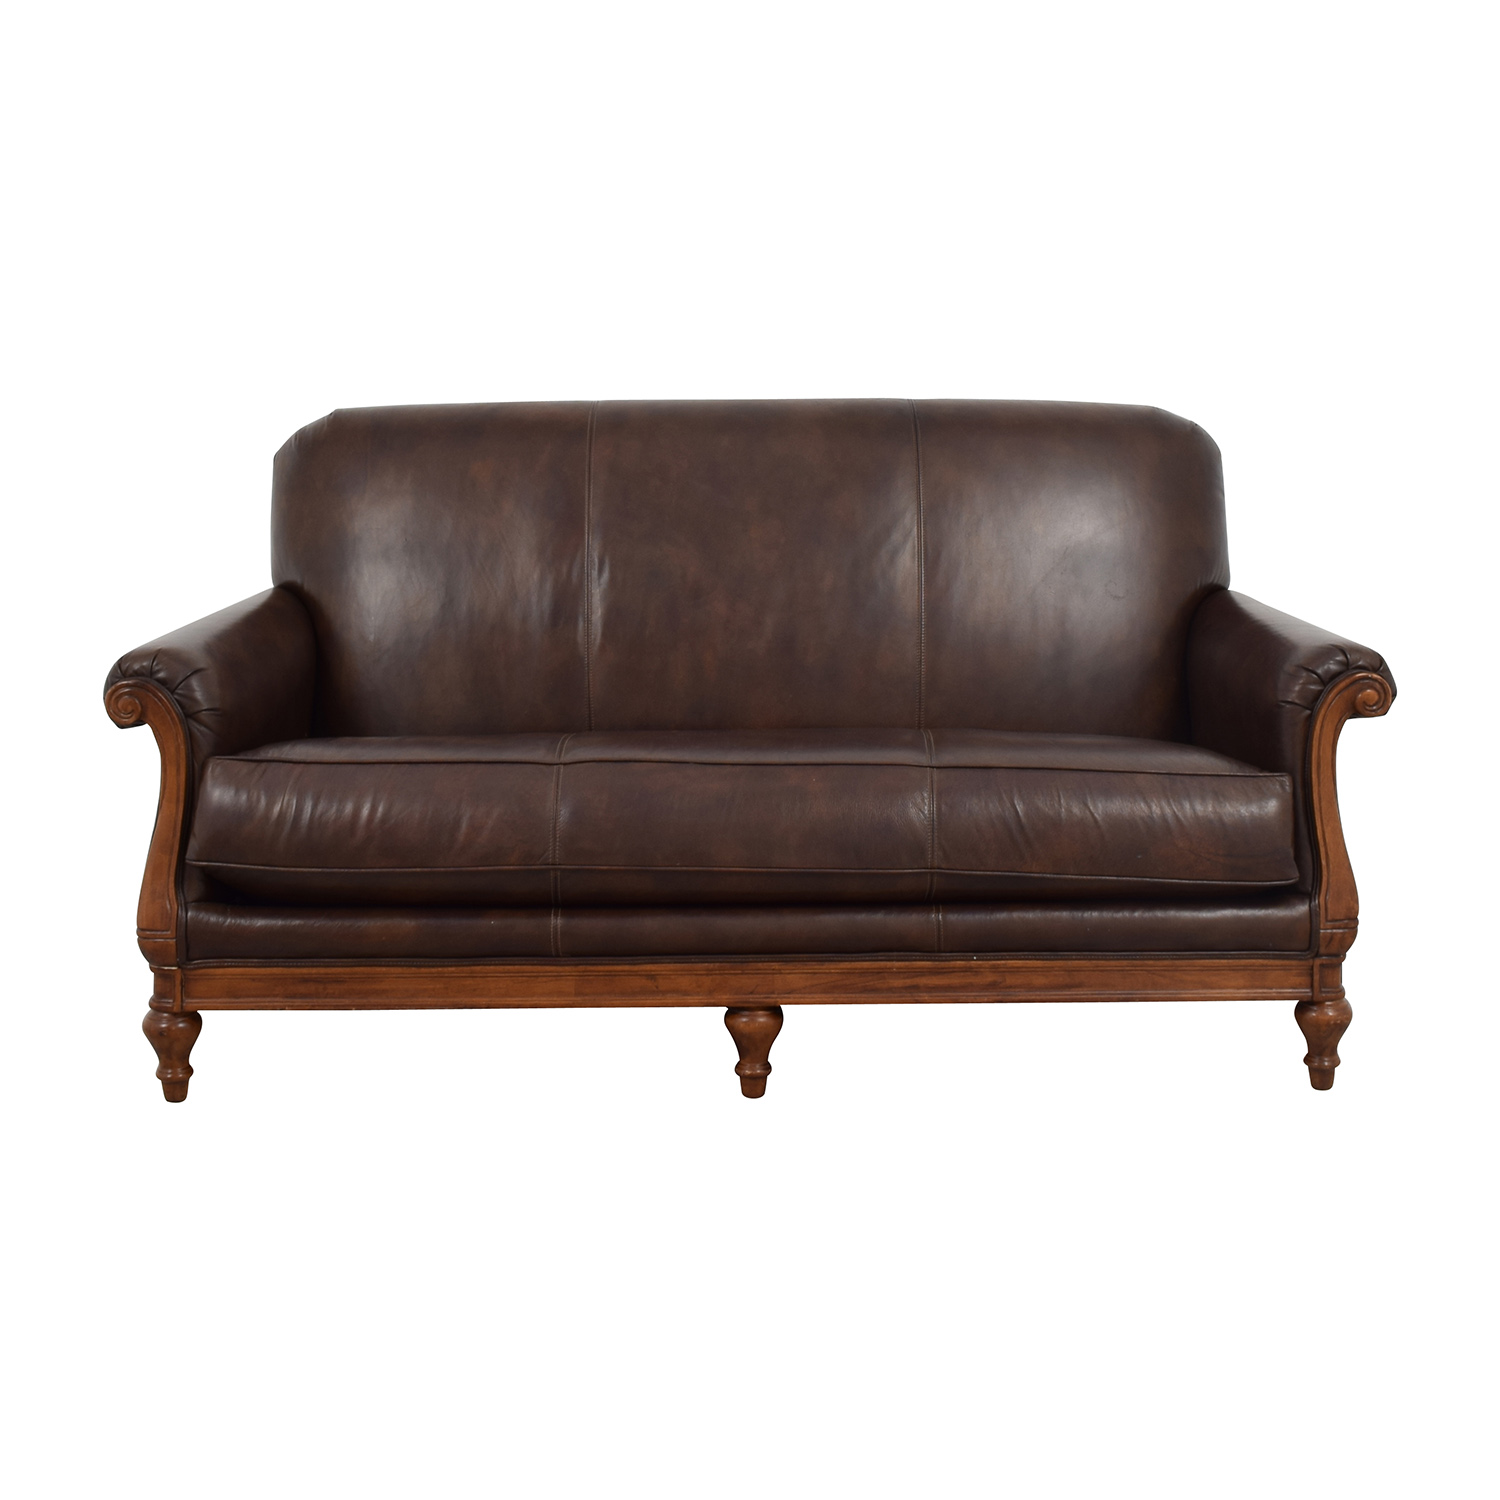 Bon Thomasville Thomasville Mid Century Leather Sofa Second Hand ...